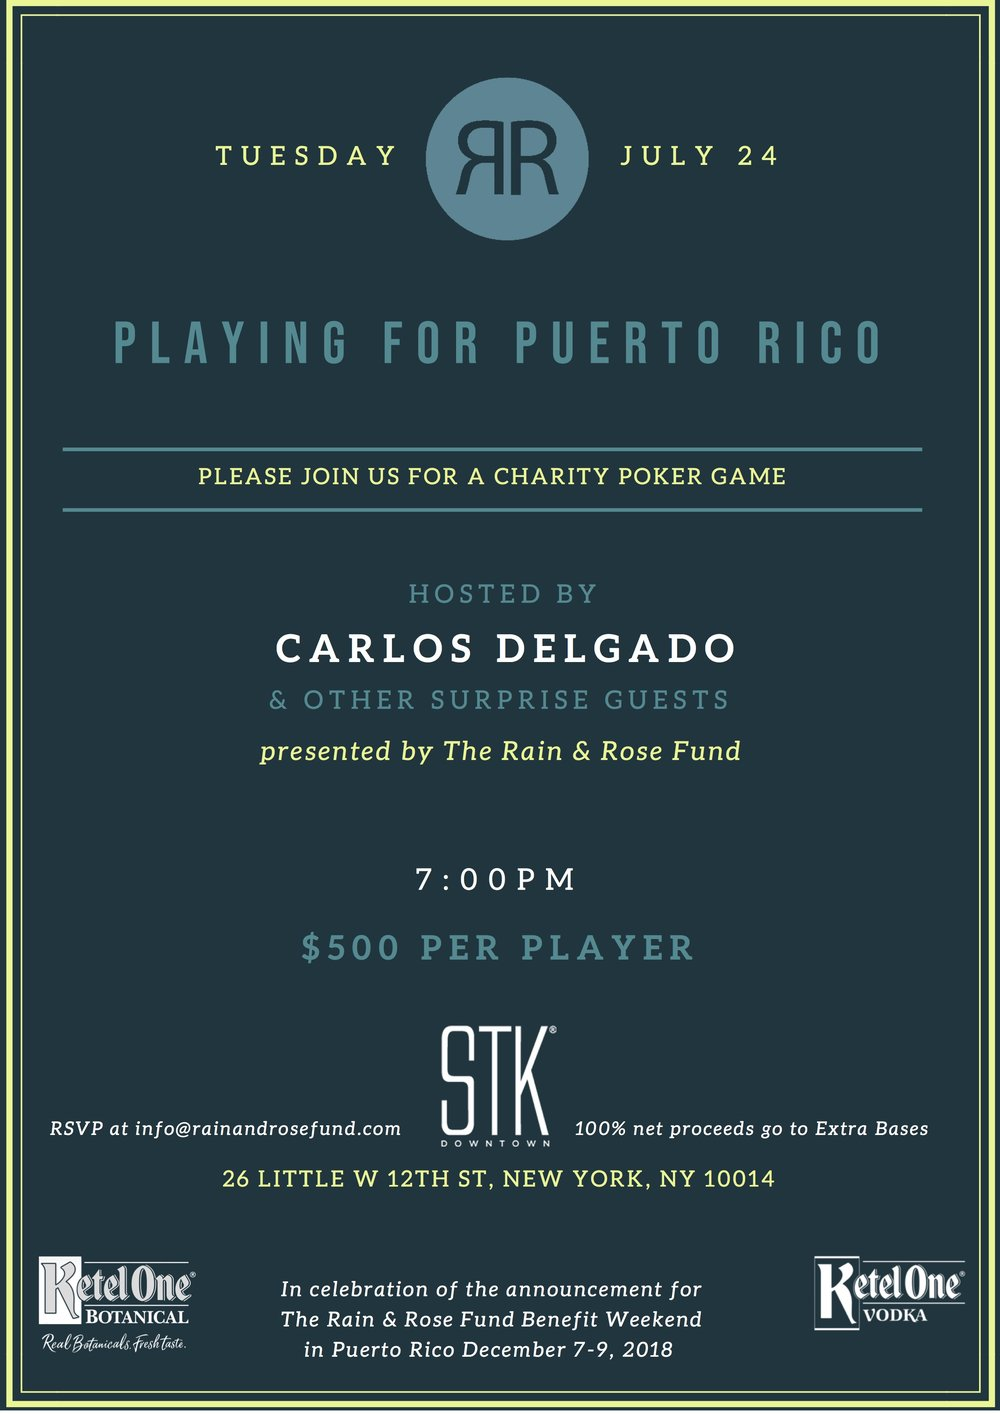 CHARITY POKER INVITE (dragged).jpg